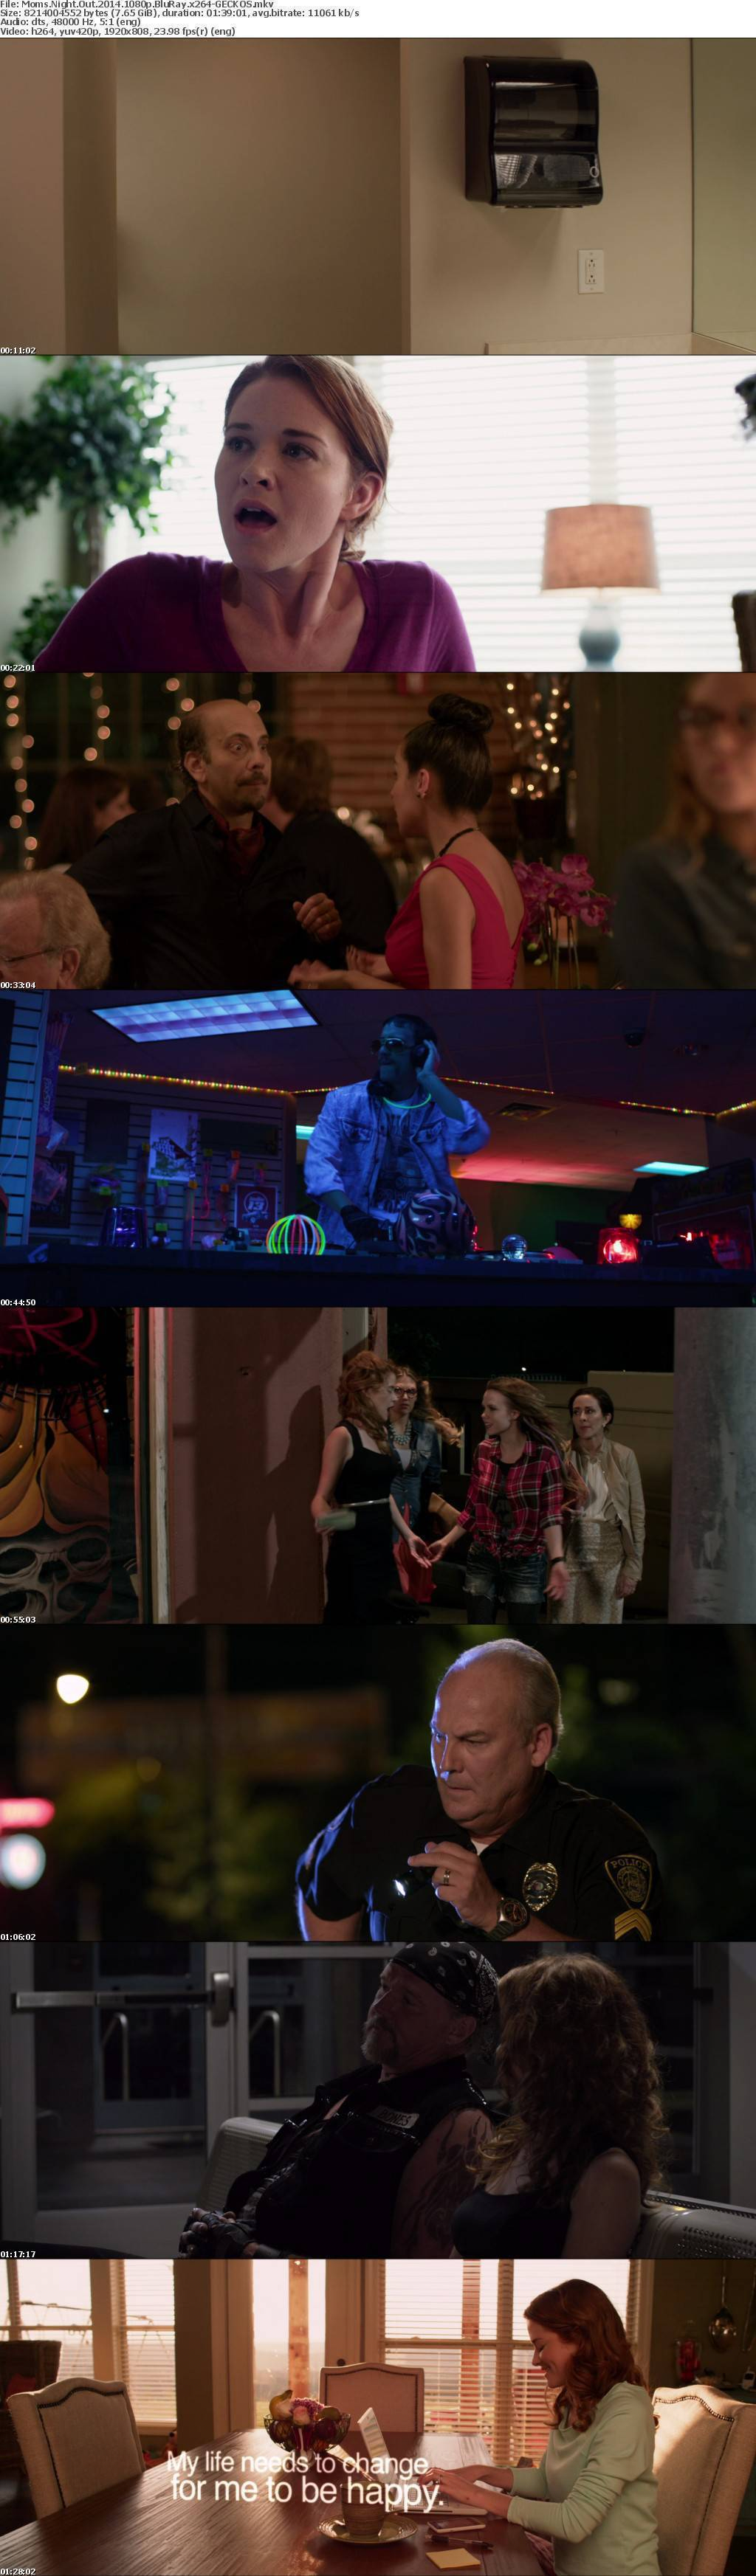 Moms Night Out 2014 1080p BluRay x264-GECKOS